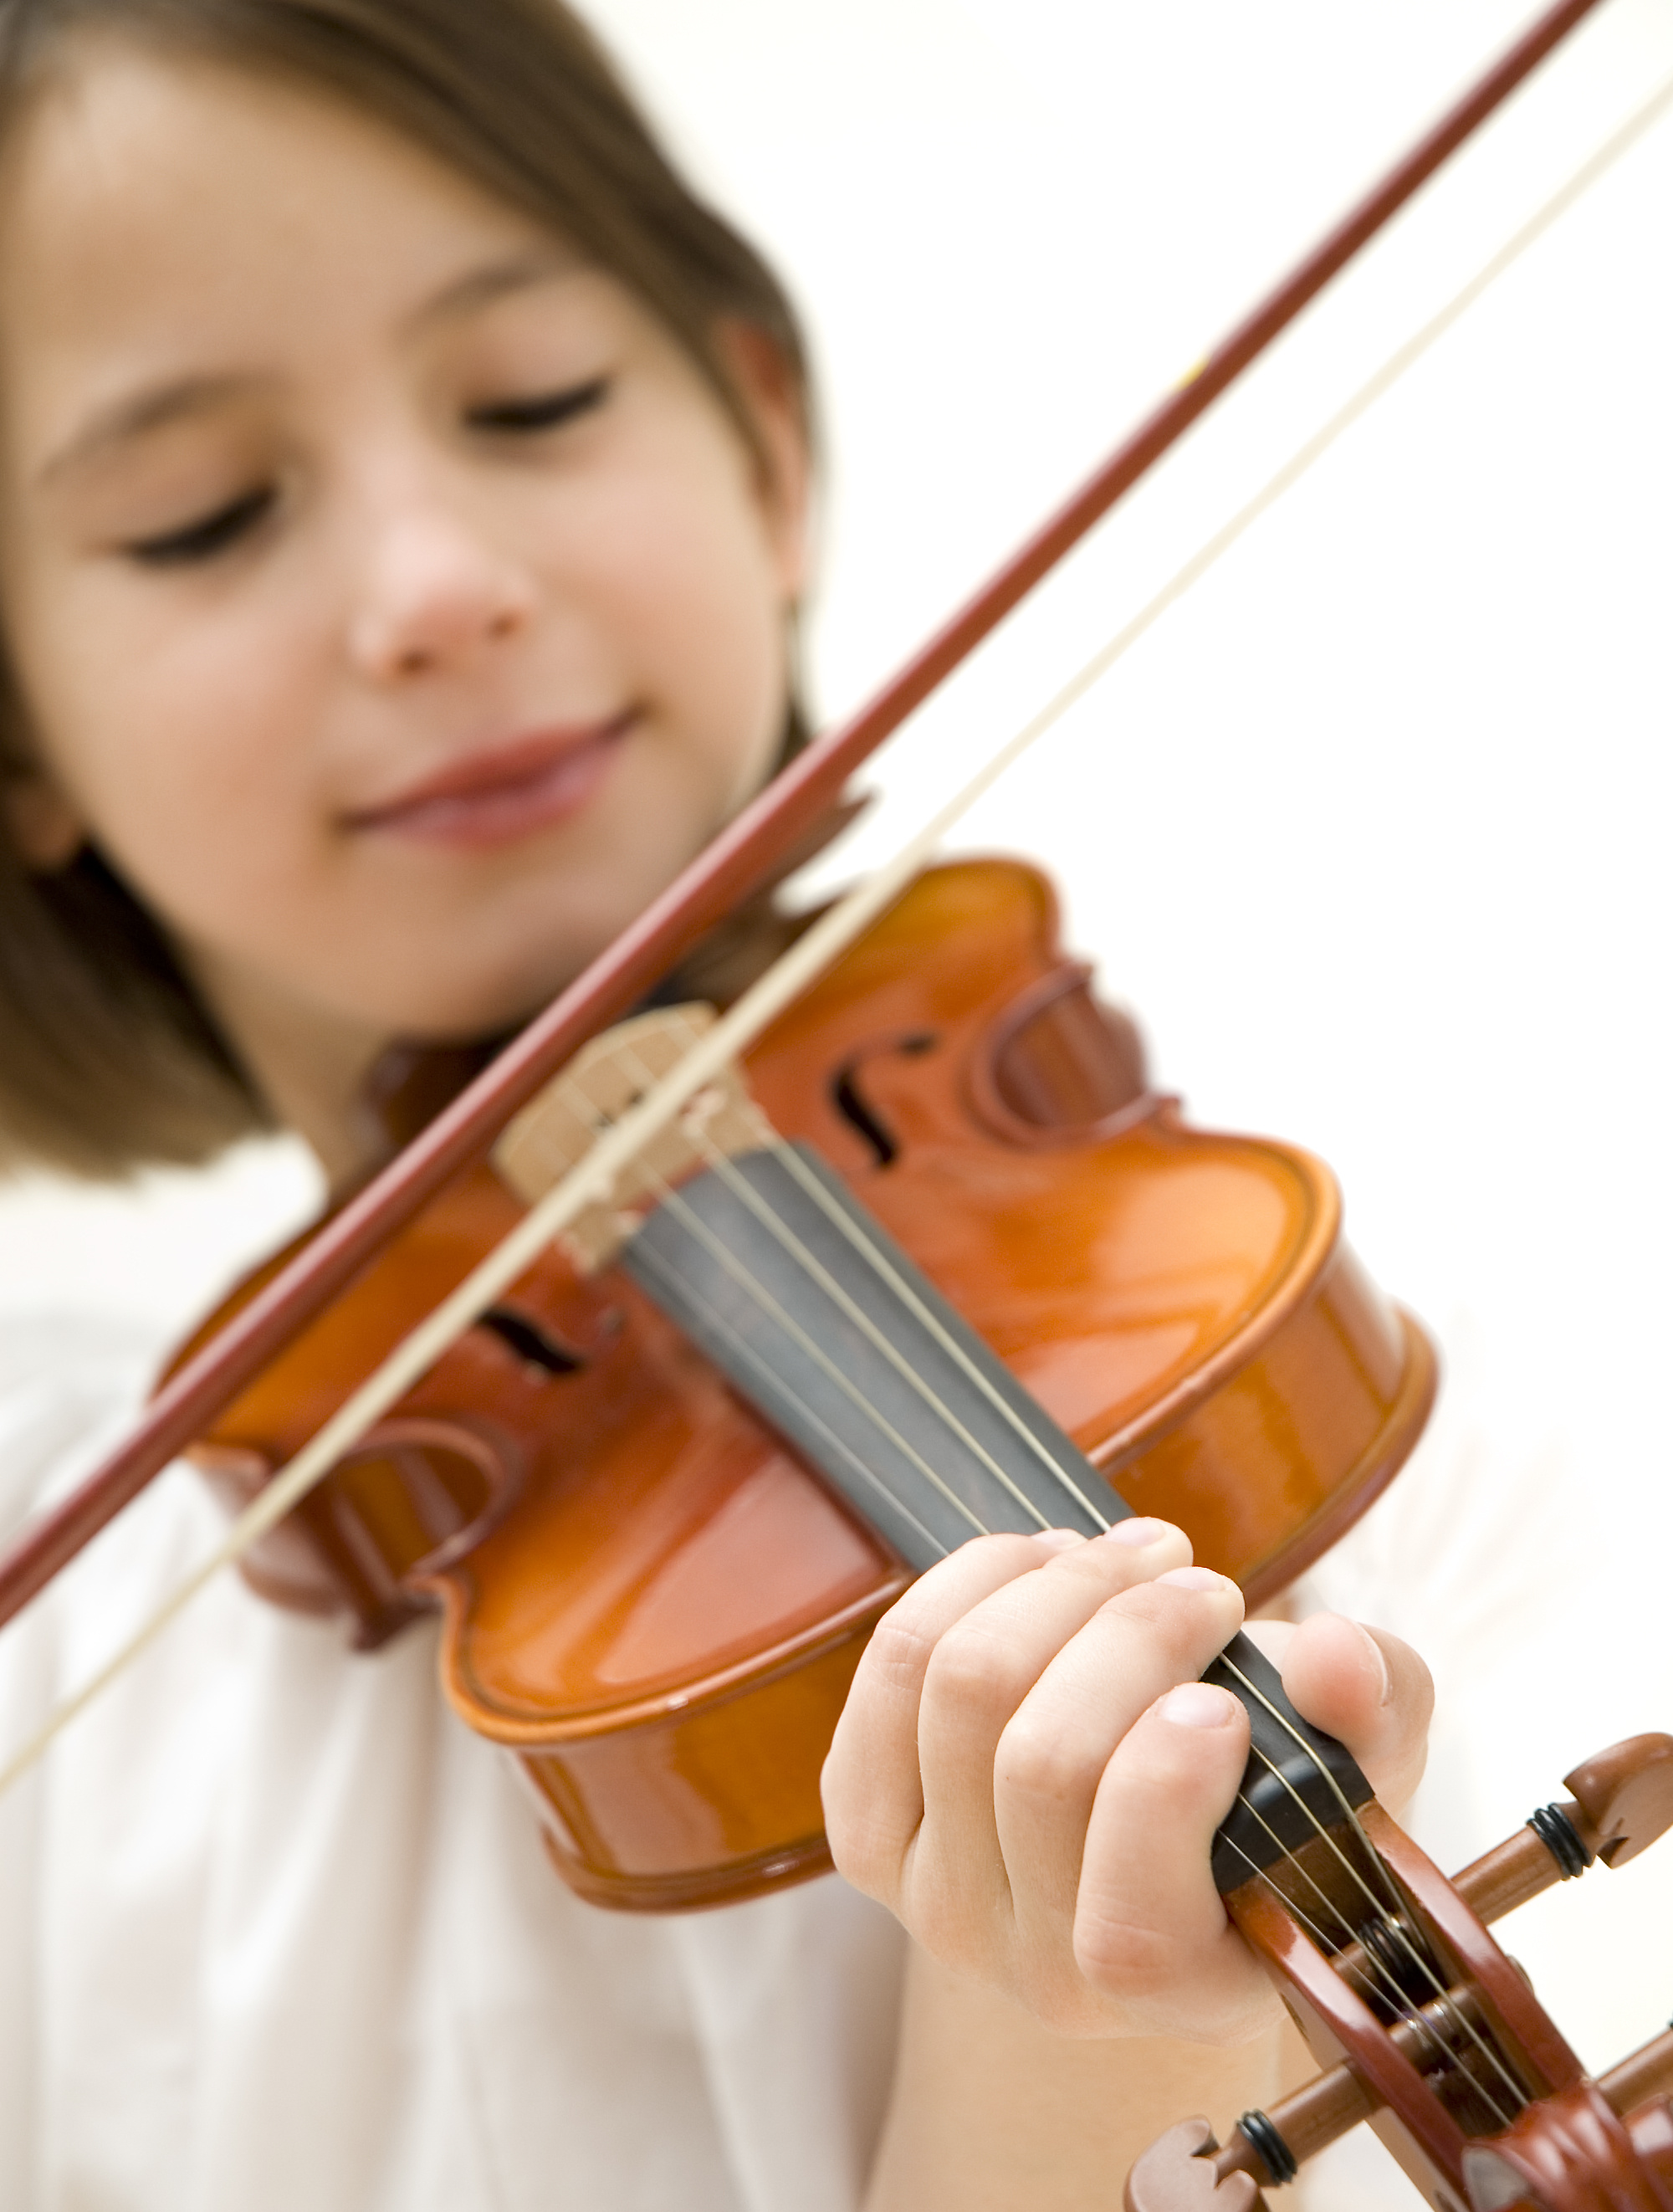 young girl with violin focused on hand isolated on white